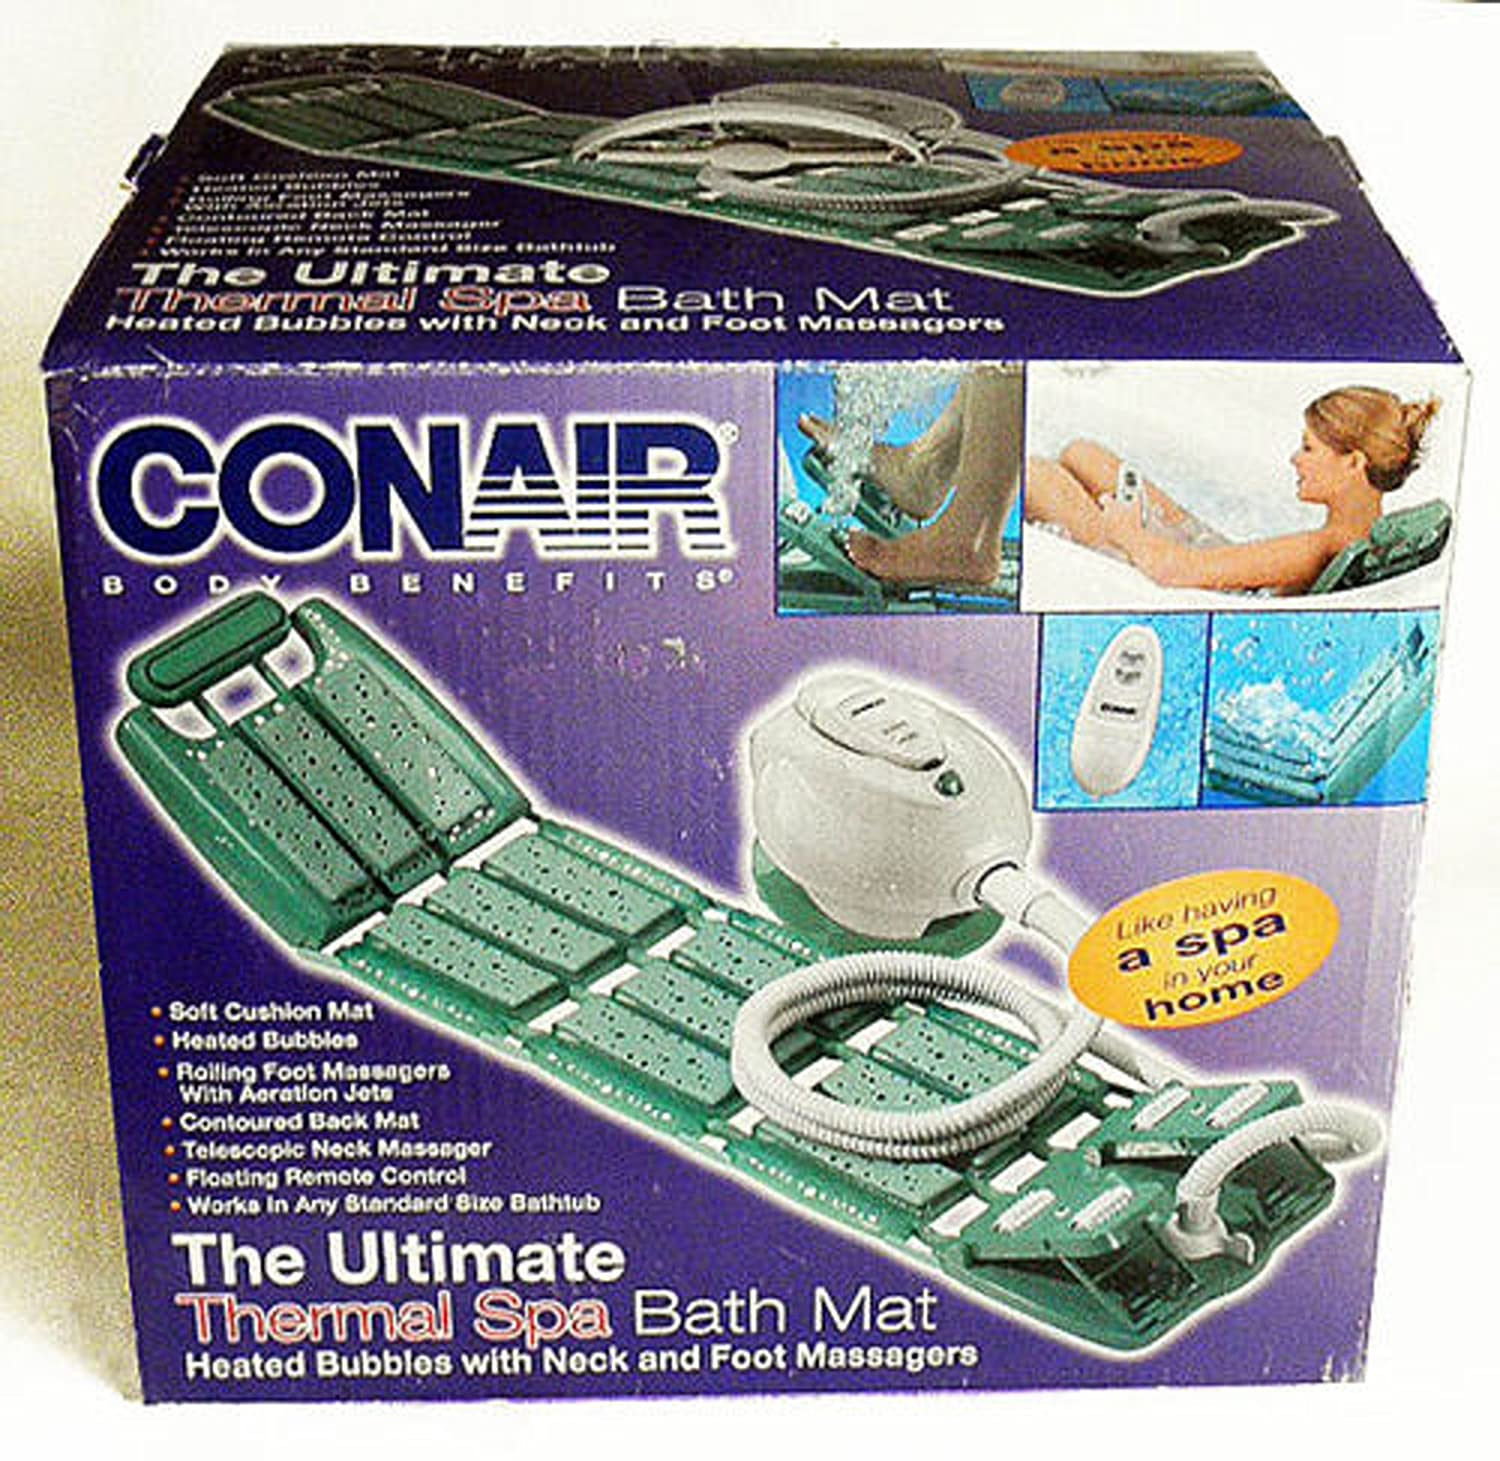 Conair Deluxe Thermal Spa Bath Mat With Remote and Foot Massage DISCONTINUED